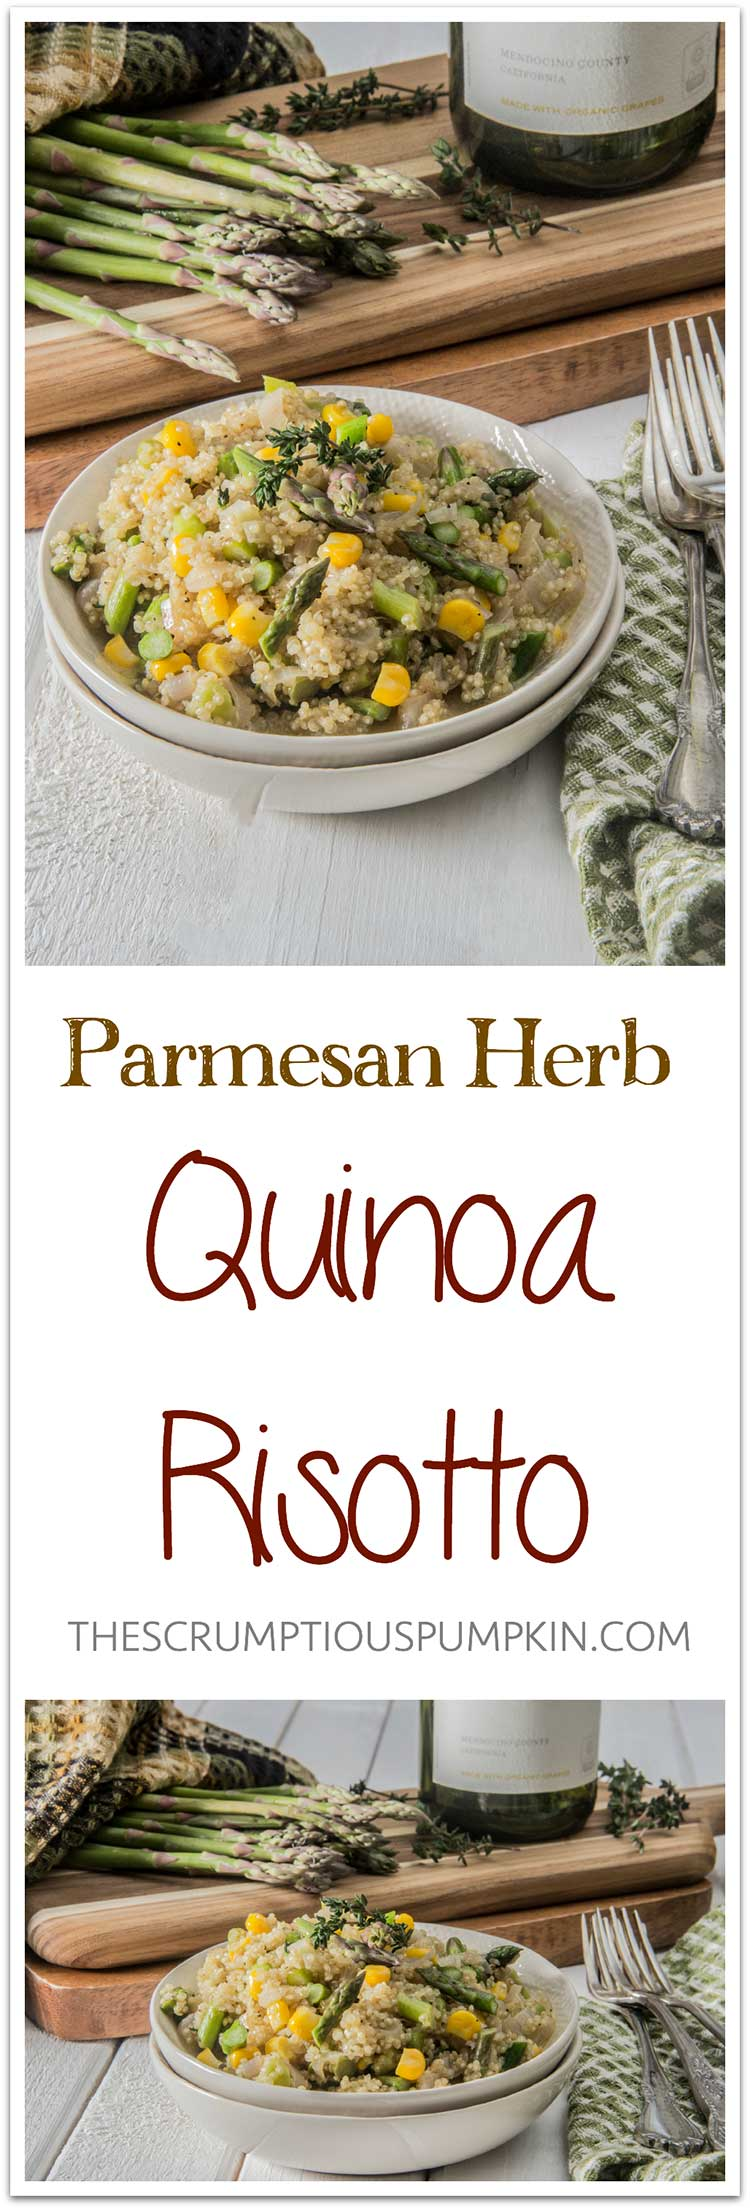 Parmesan-Herb-Quinoa-Risotto-with-Asparagus